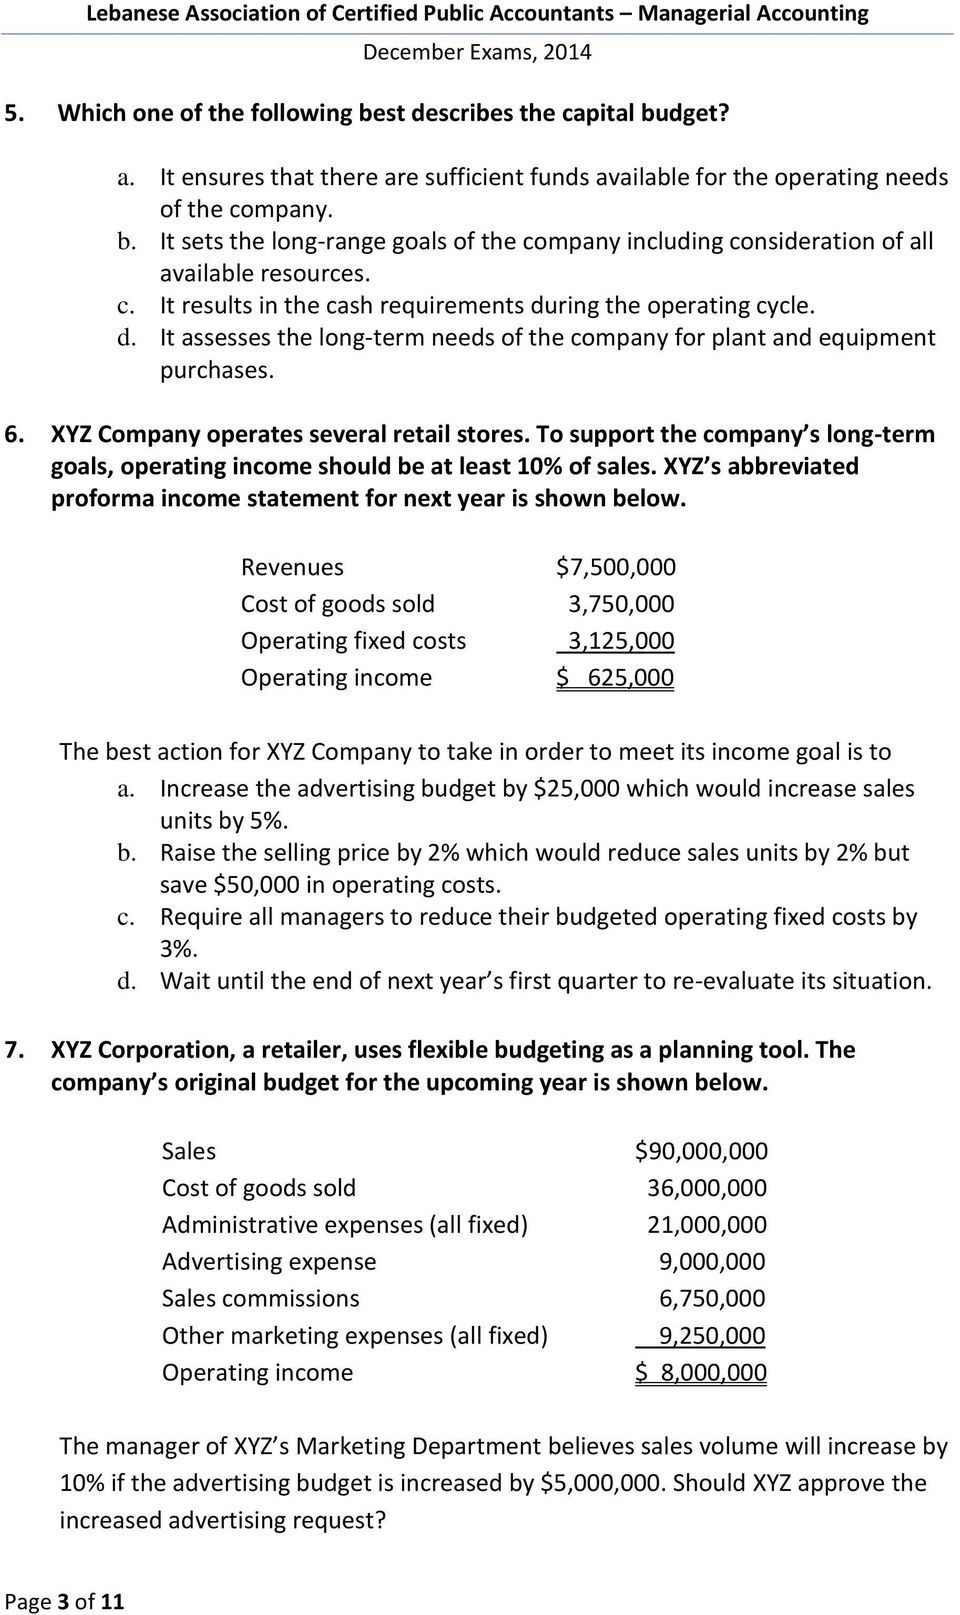 To support the company s long-term goals, operating income should be at least 10% of sales. XYZ s abbreviated proforma income statement for next year is shown below.